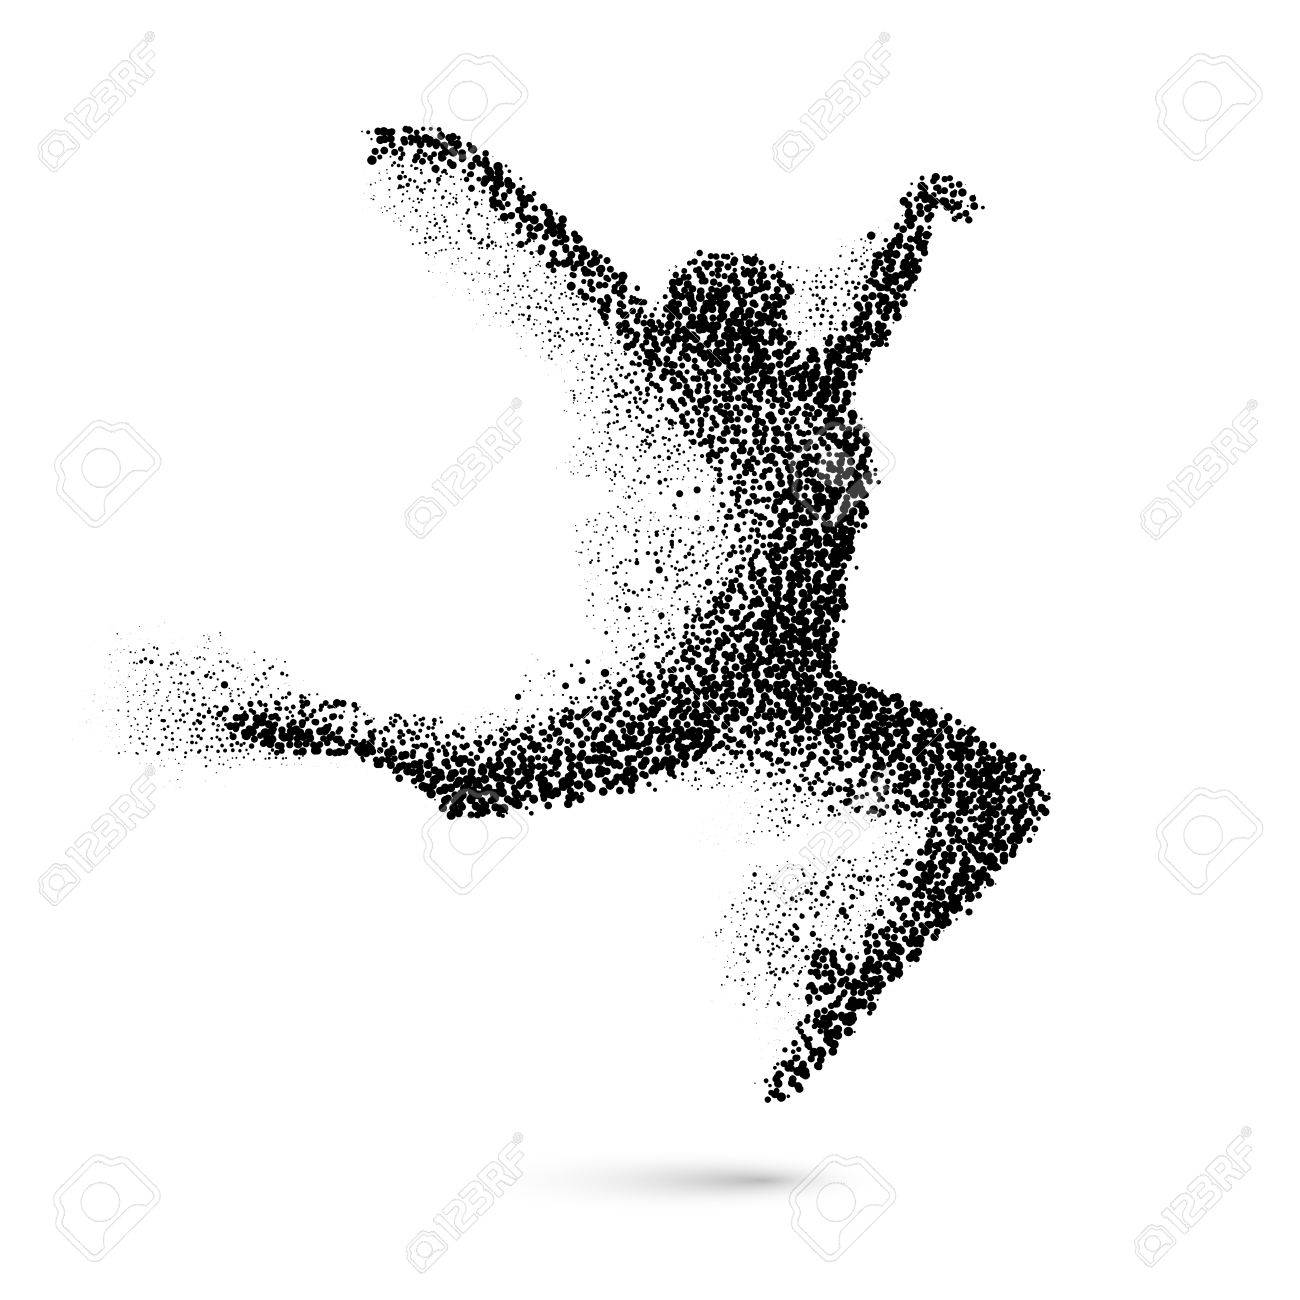 Dancing Woman in the Form of Black Particles on White - 56627275